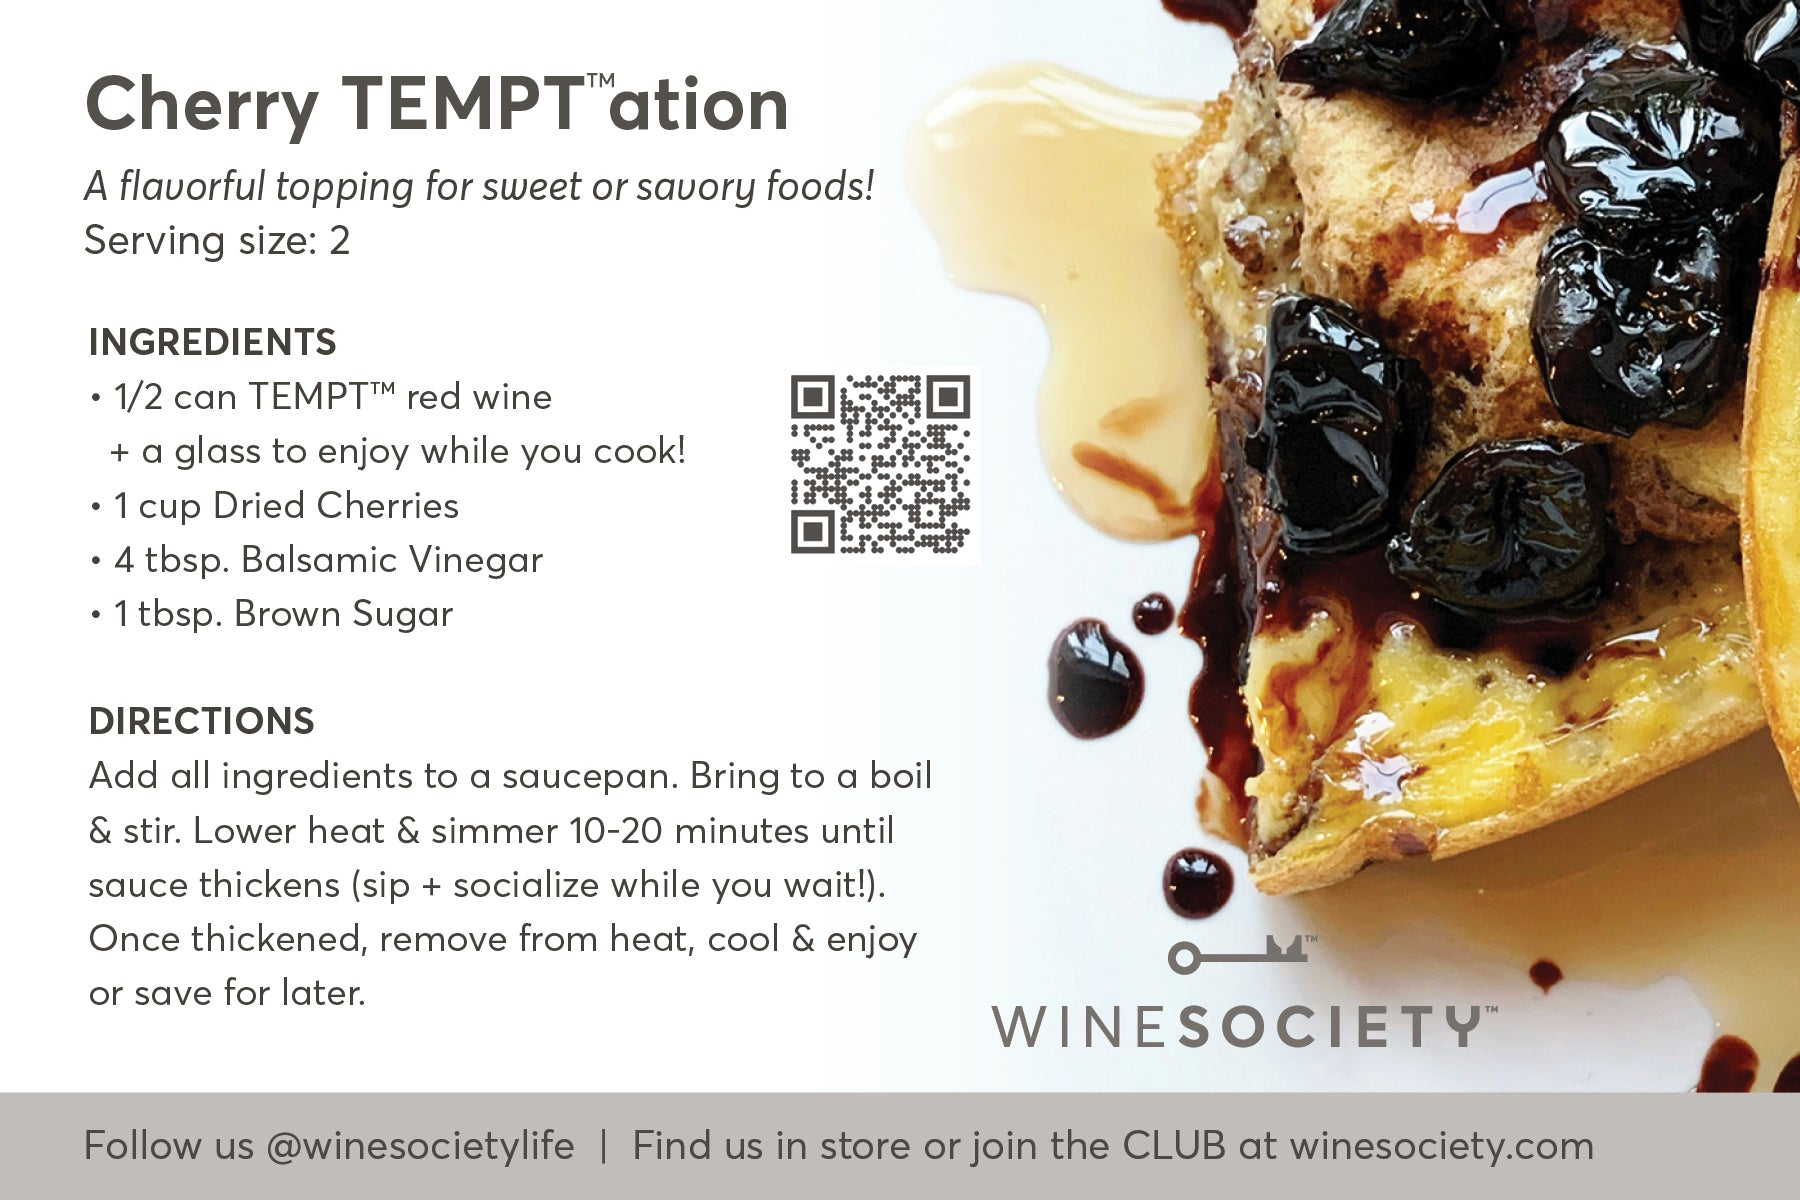 WineSociety 4x6 Recipe Card Cherry TEMPTation topping